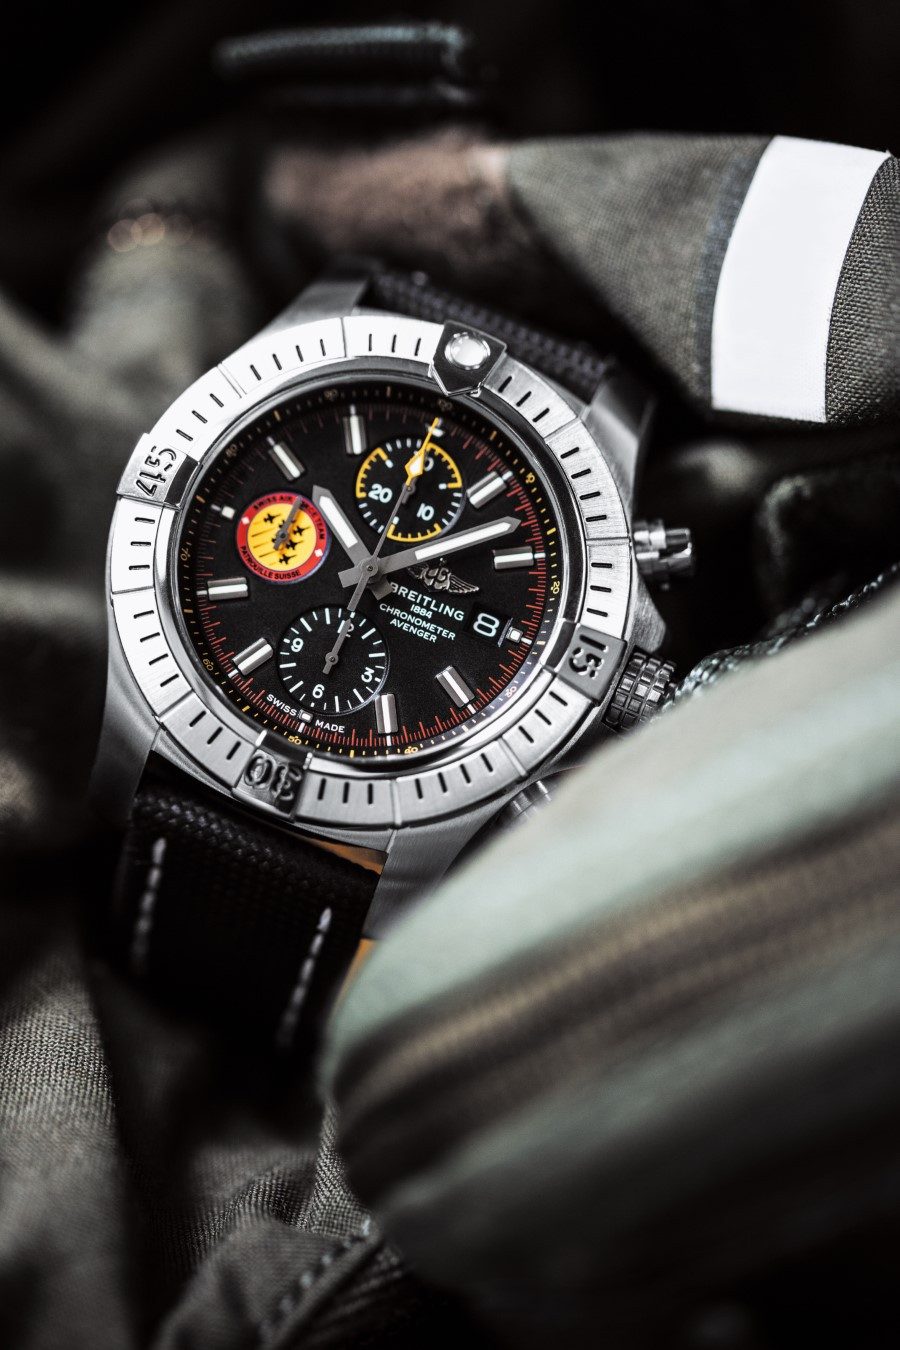 Breitling Avenger Collection - Breitling Avenger Swiss Air Force Team Limited Edition